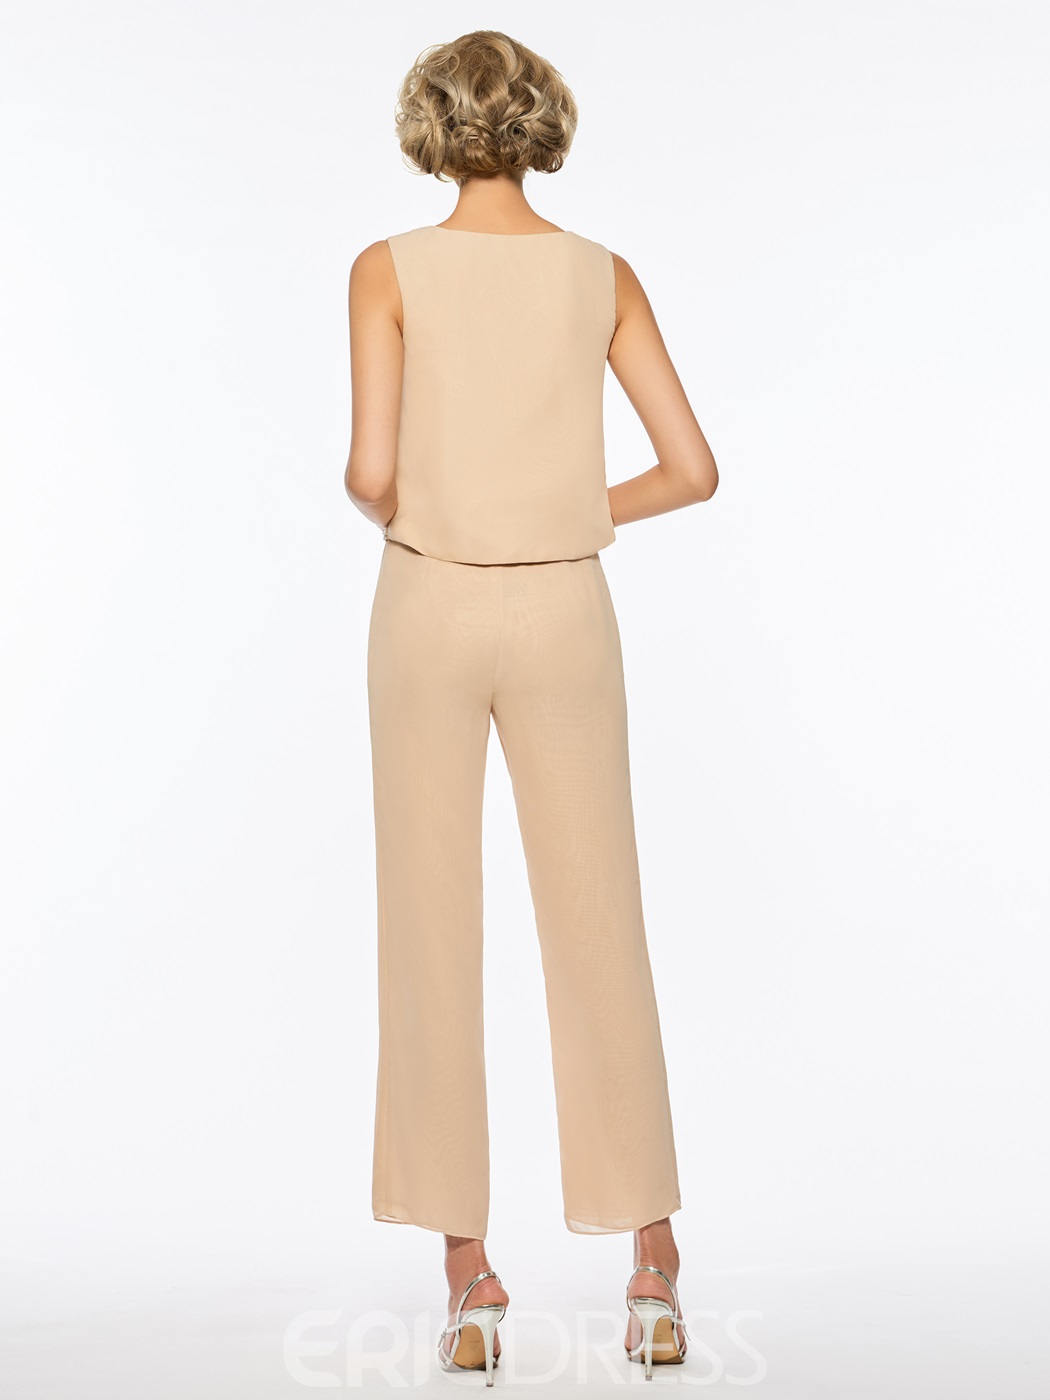 Ericdress Chiffon Long Sleeves Mother of the Bride Jumpsuit